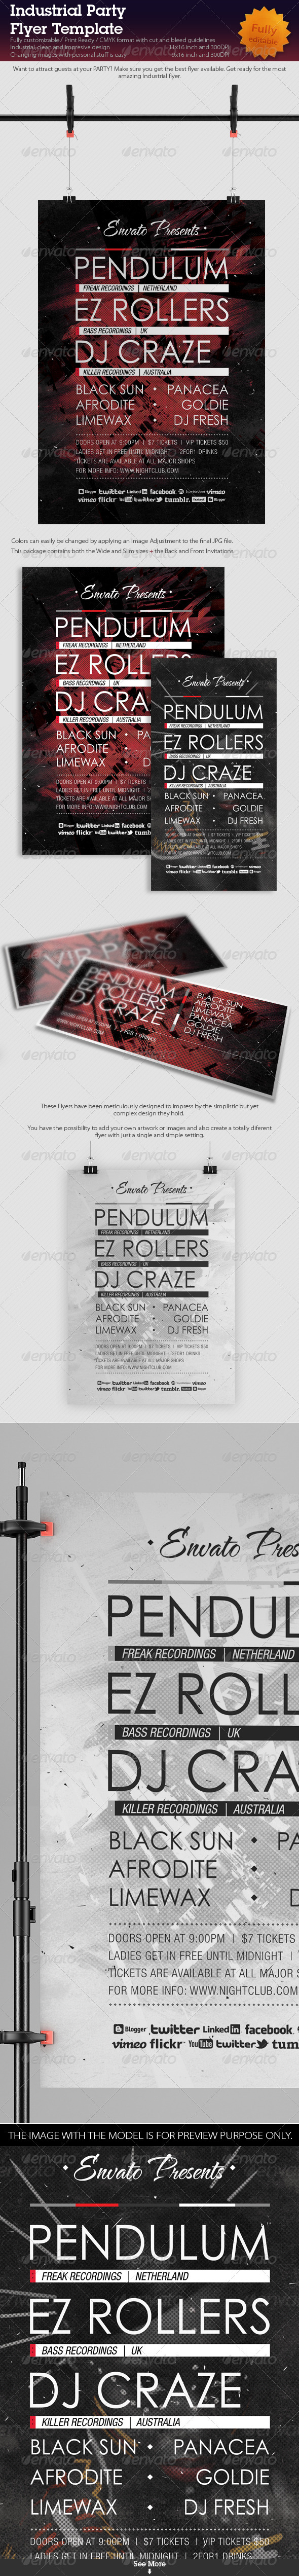 Industrial Party Flyer Template - Events Flyers